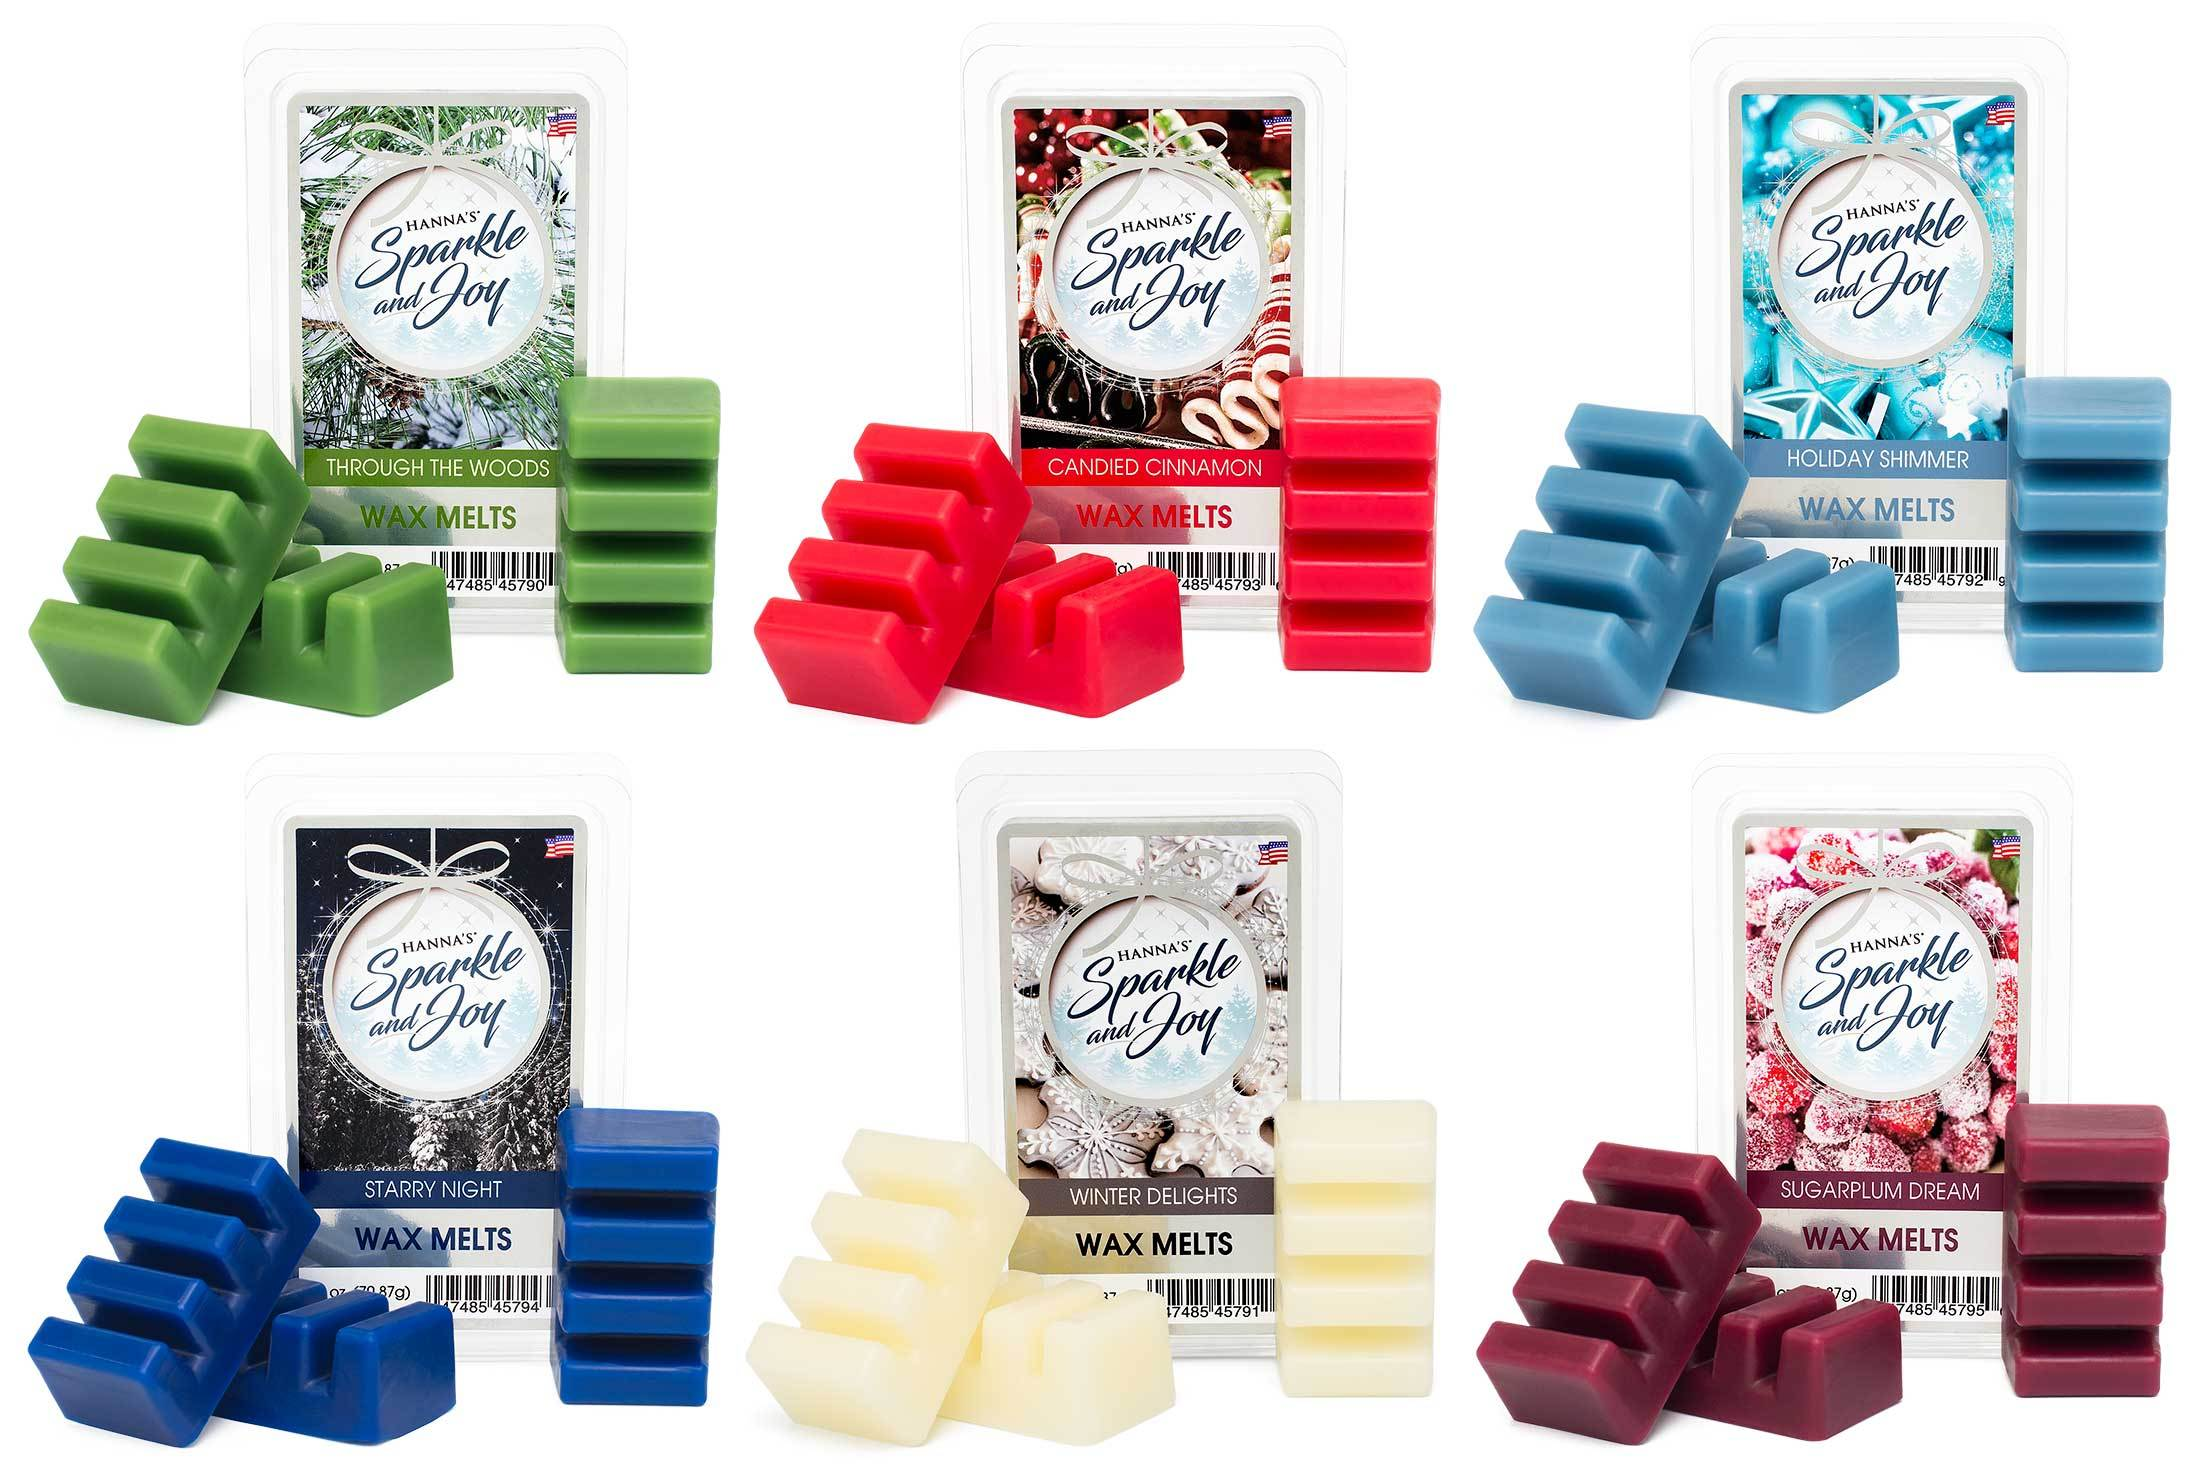 Holiday Shimmer Scented Wax Melts Melts Candlemart.com $ 2.49